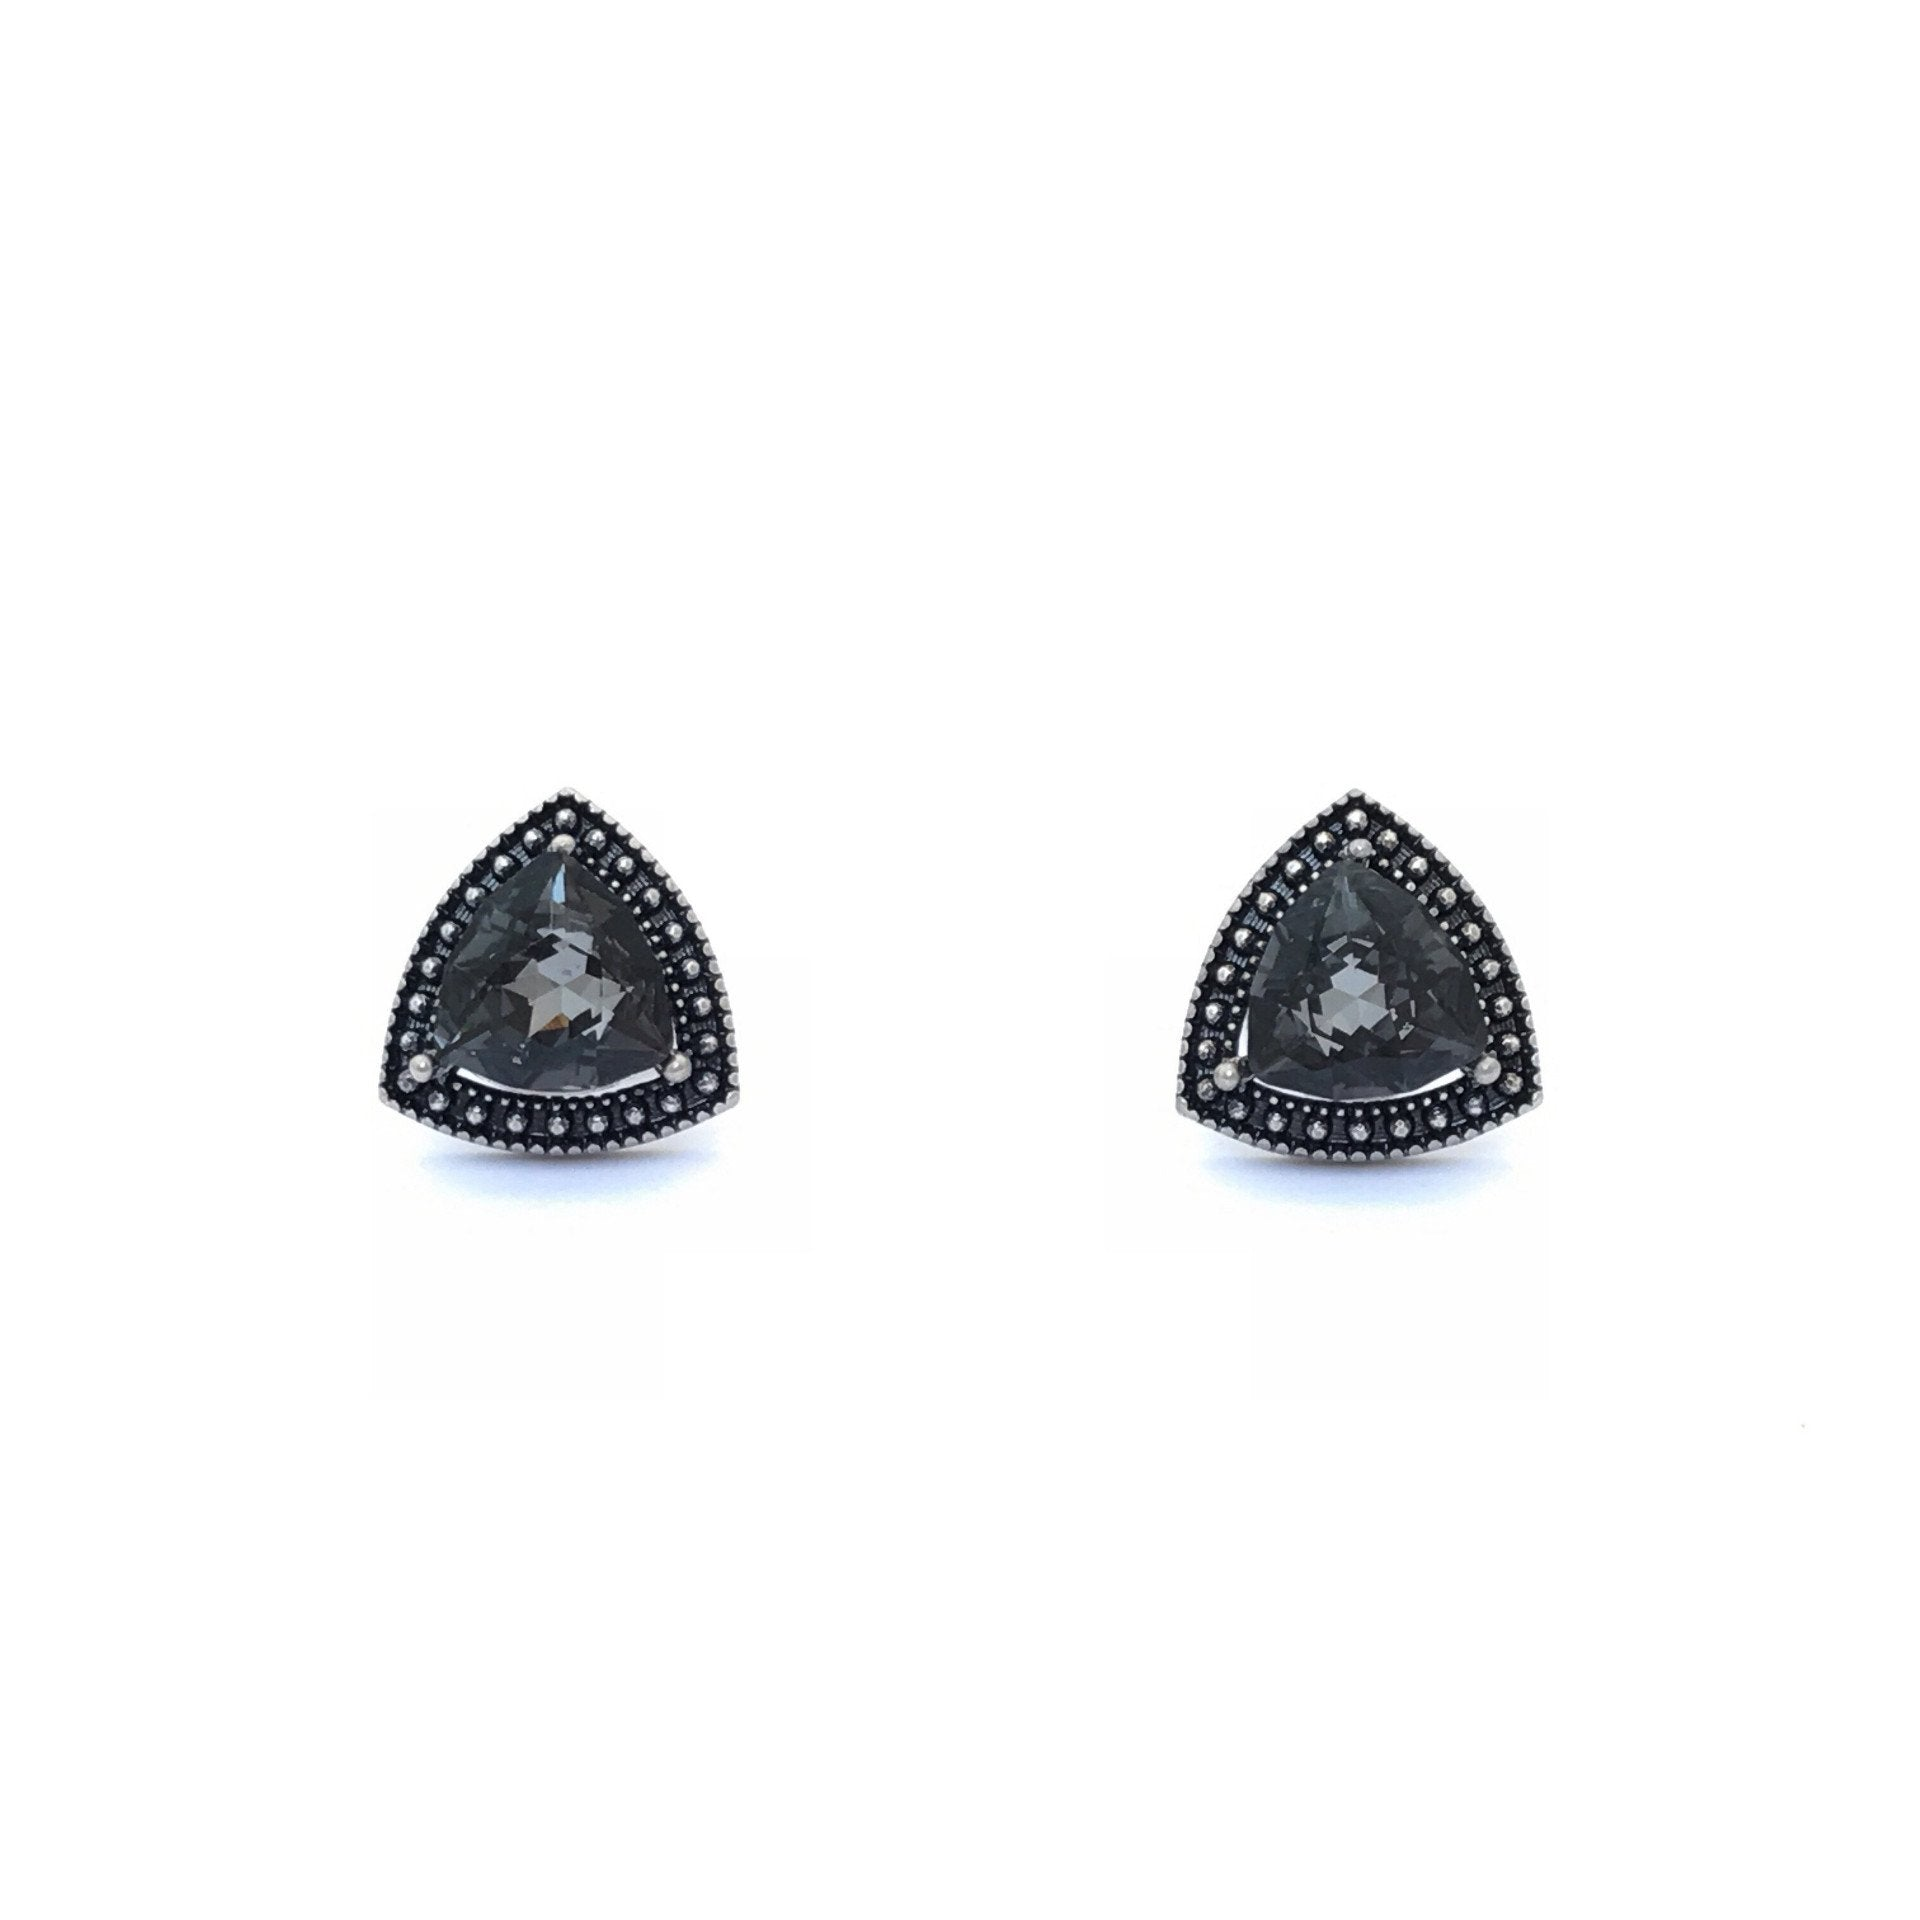 bonbon crystal paris jewellery black earrings stud tresor image